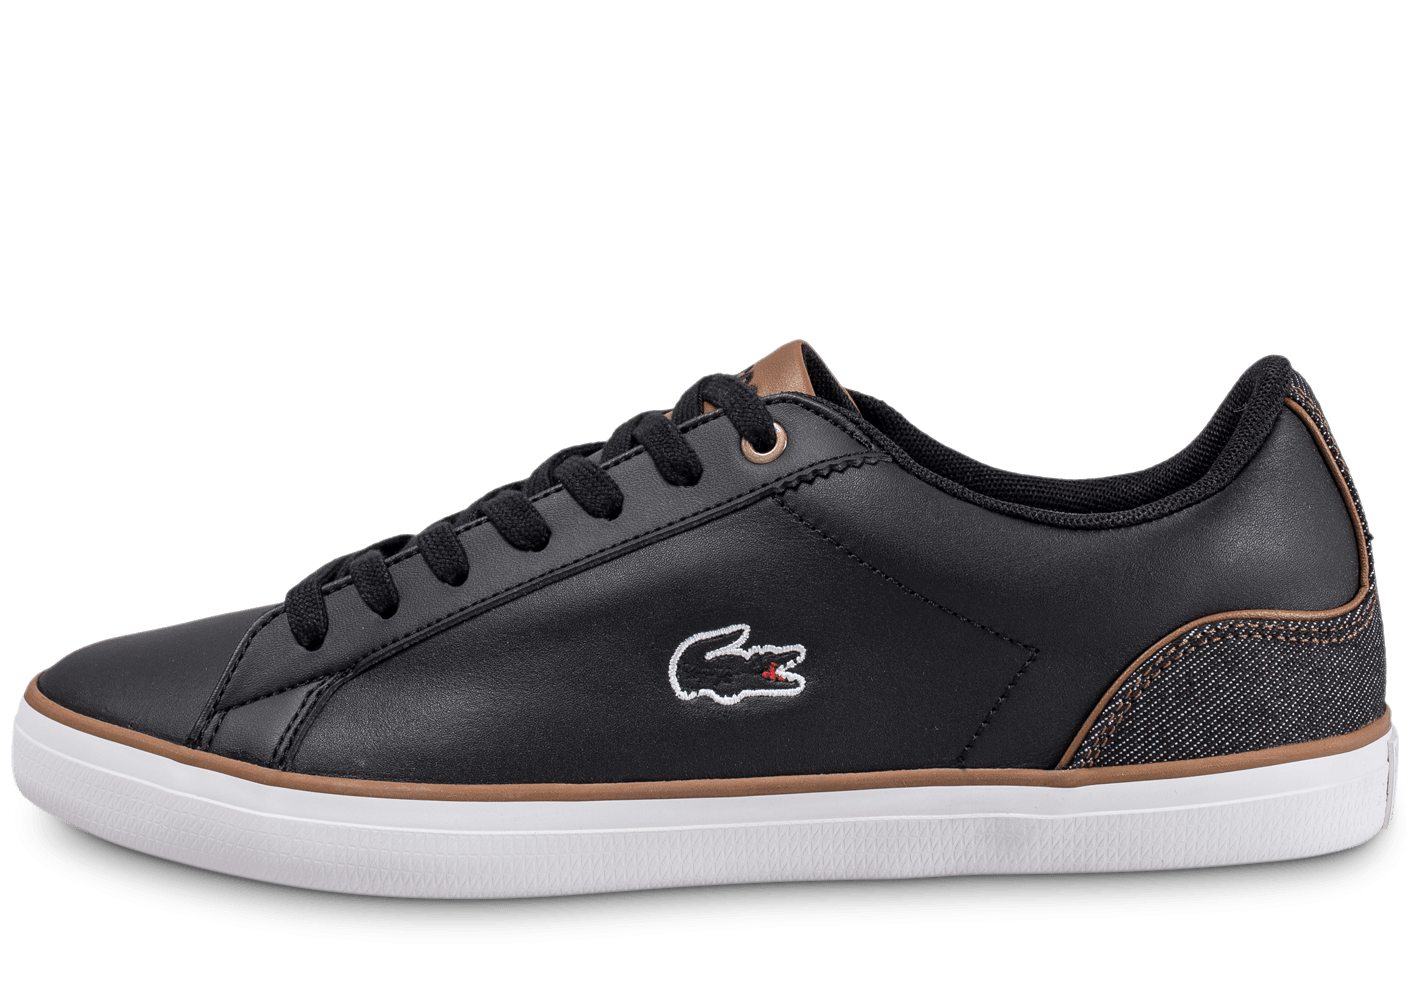 11eeef3ced Noire Baskets Homme Cuir Chaussures Lacoste Lerond Chausport fyY6gvb7